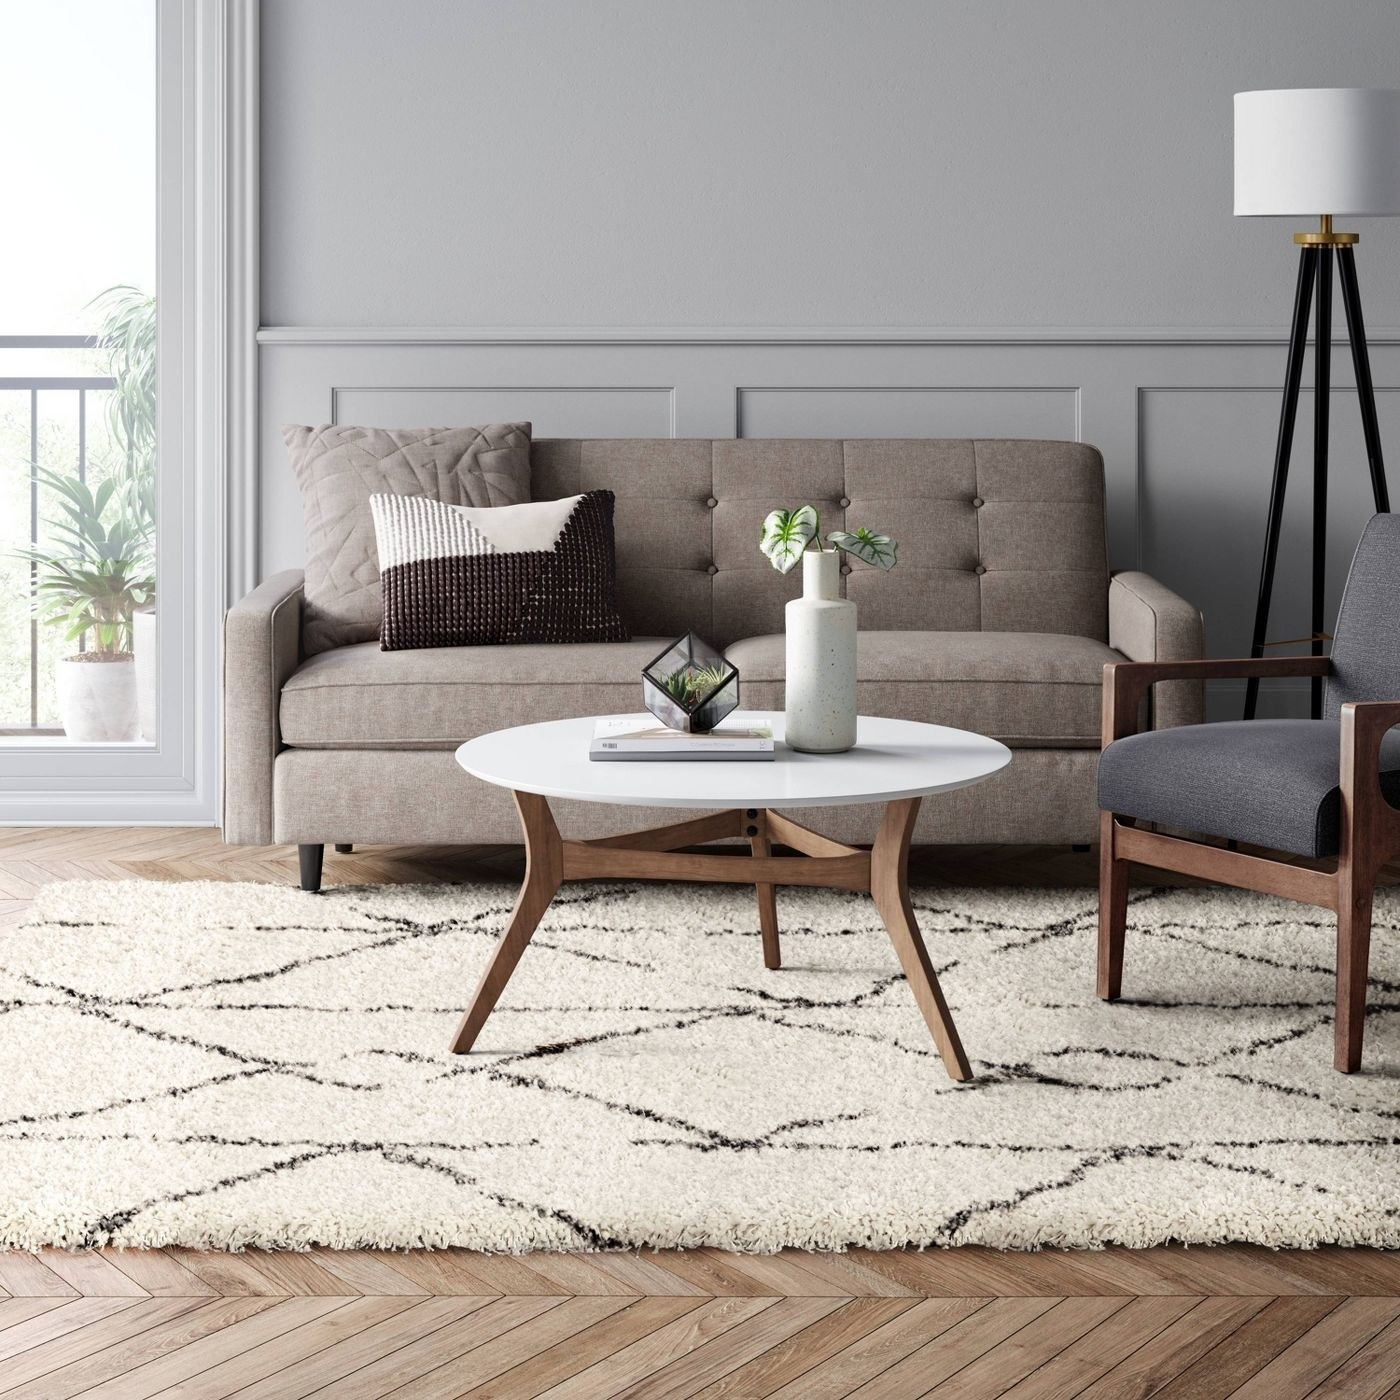 cream and grey geometric woven rug in a living room under a coffee table, couch, and chair